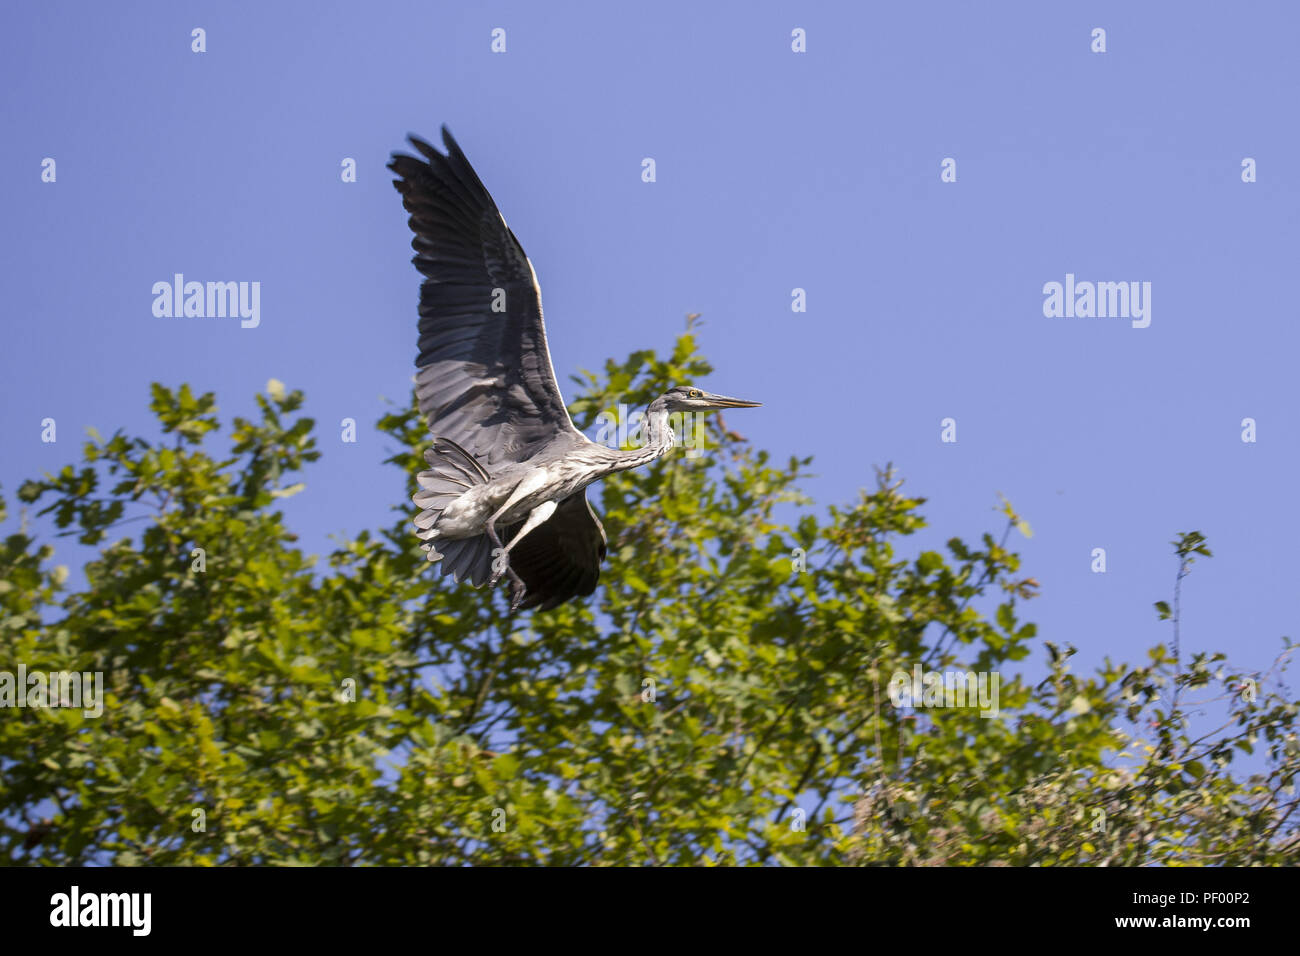 August 15, 2018 - Rust, Baden-Wurttemberg, Germany - Gray heron in flight on a boat trip through the nature reserve Taubergießen near the Europa-Park Rust Credit: Jannis Grosse/ZUMA Wire/Alamy Live News - Stock Image